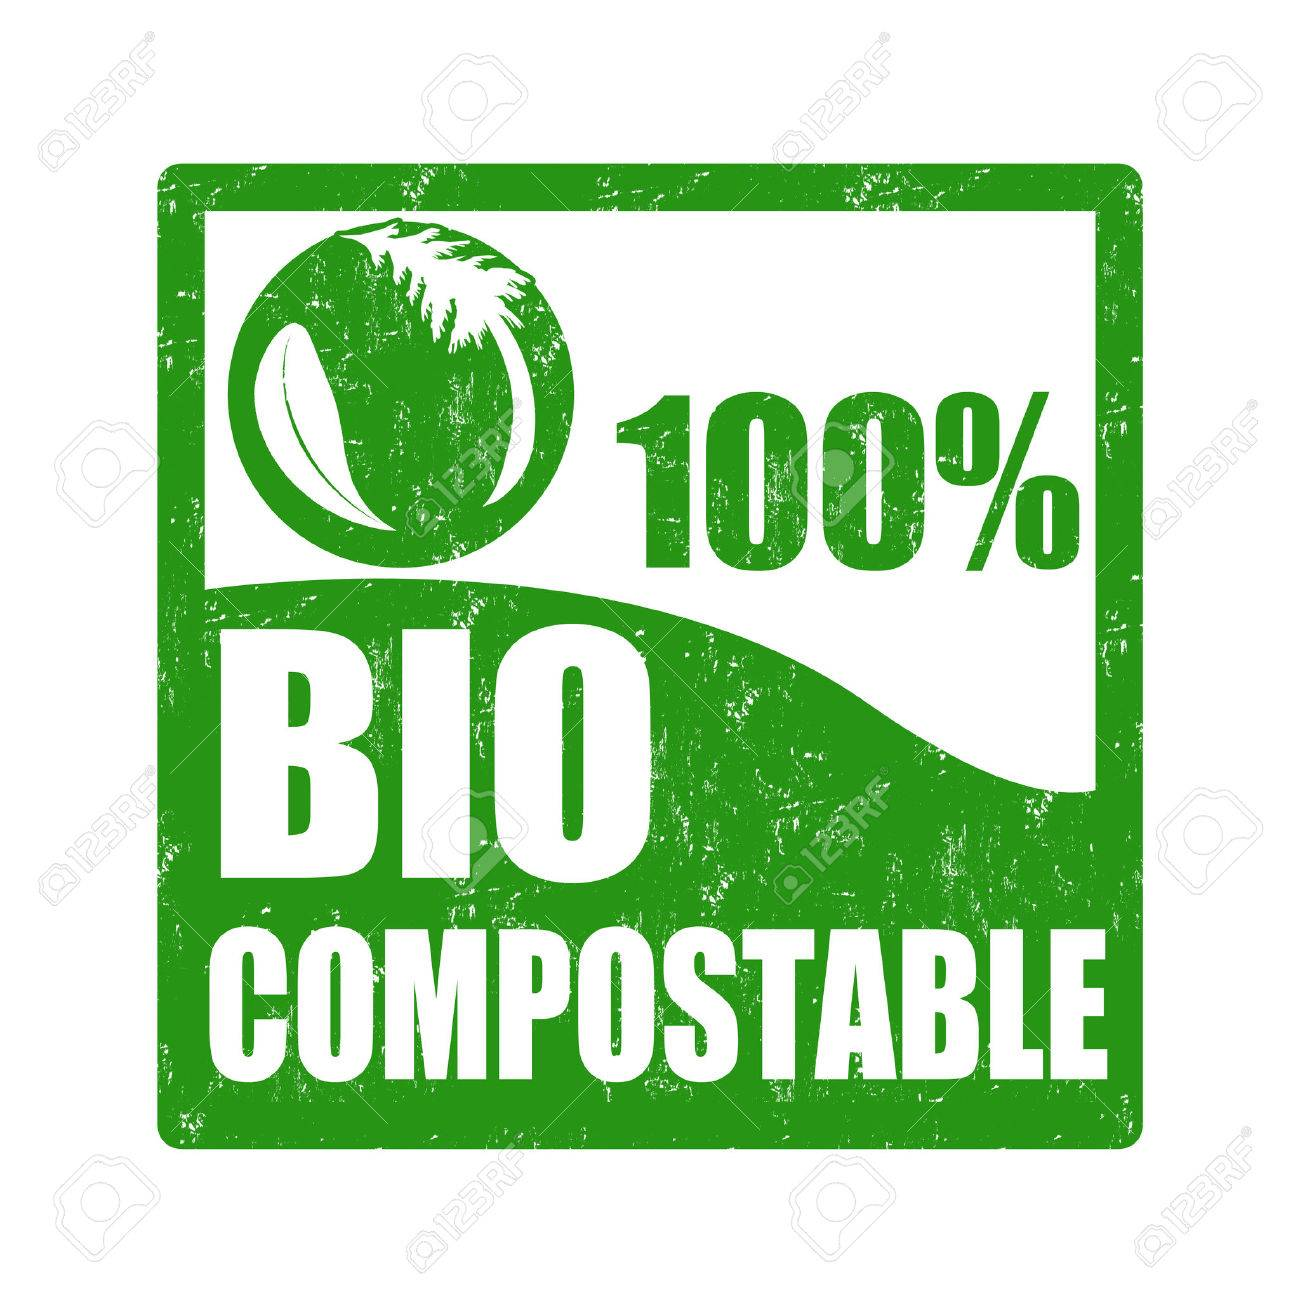 26578553-bio-compostable-grunge-sello-de